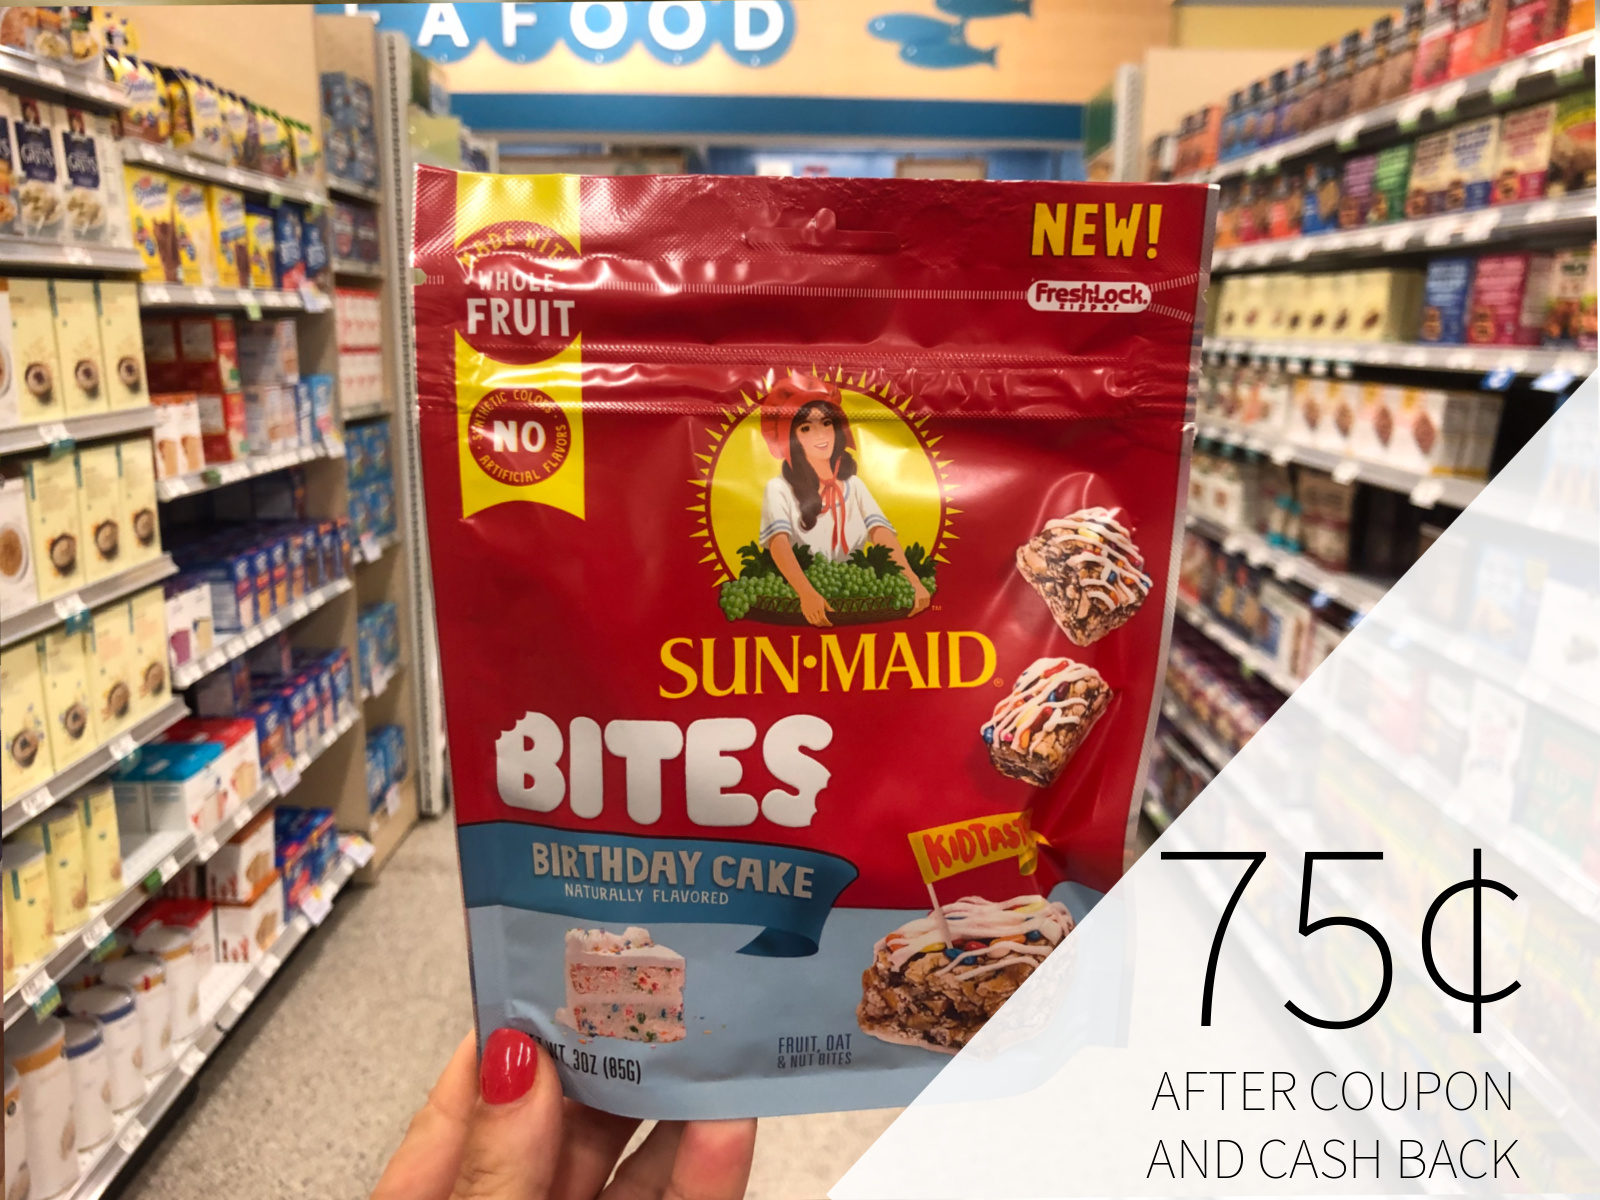 Try New Sun-Maid Bites At A HUGE Discount + A Giveaway (Four Readers Will Win A $50 Publix Gift Card) on I Heart Publix 2